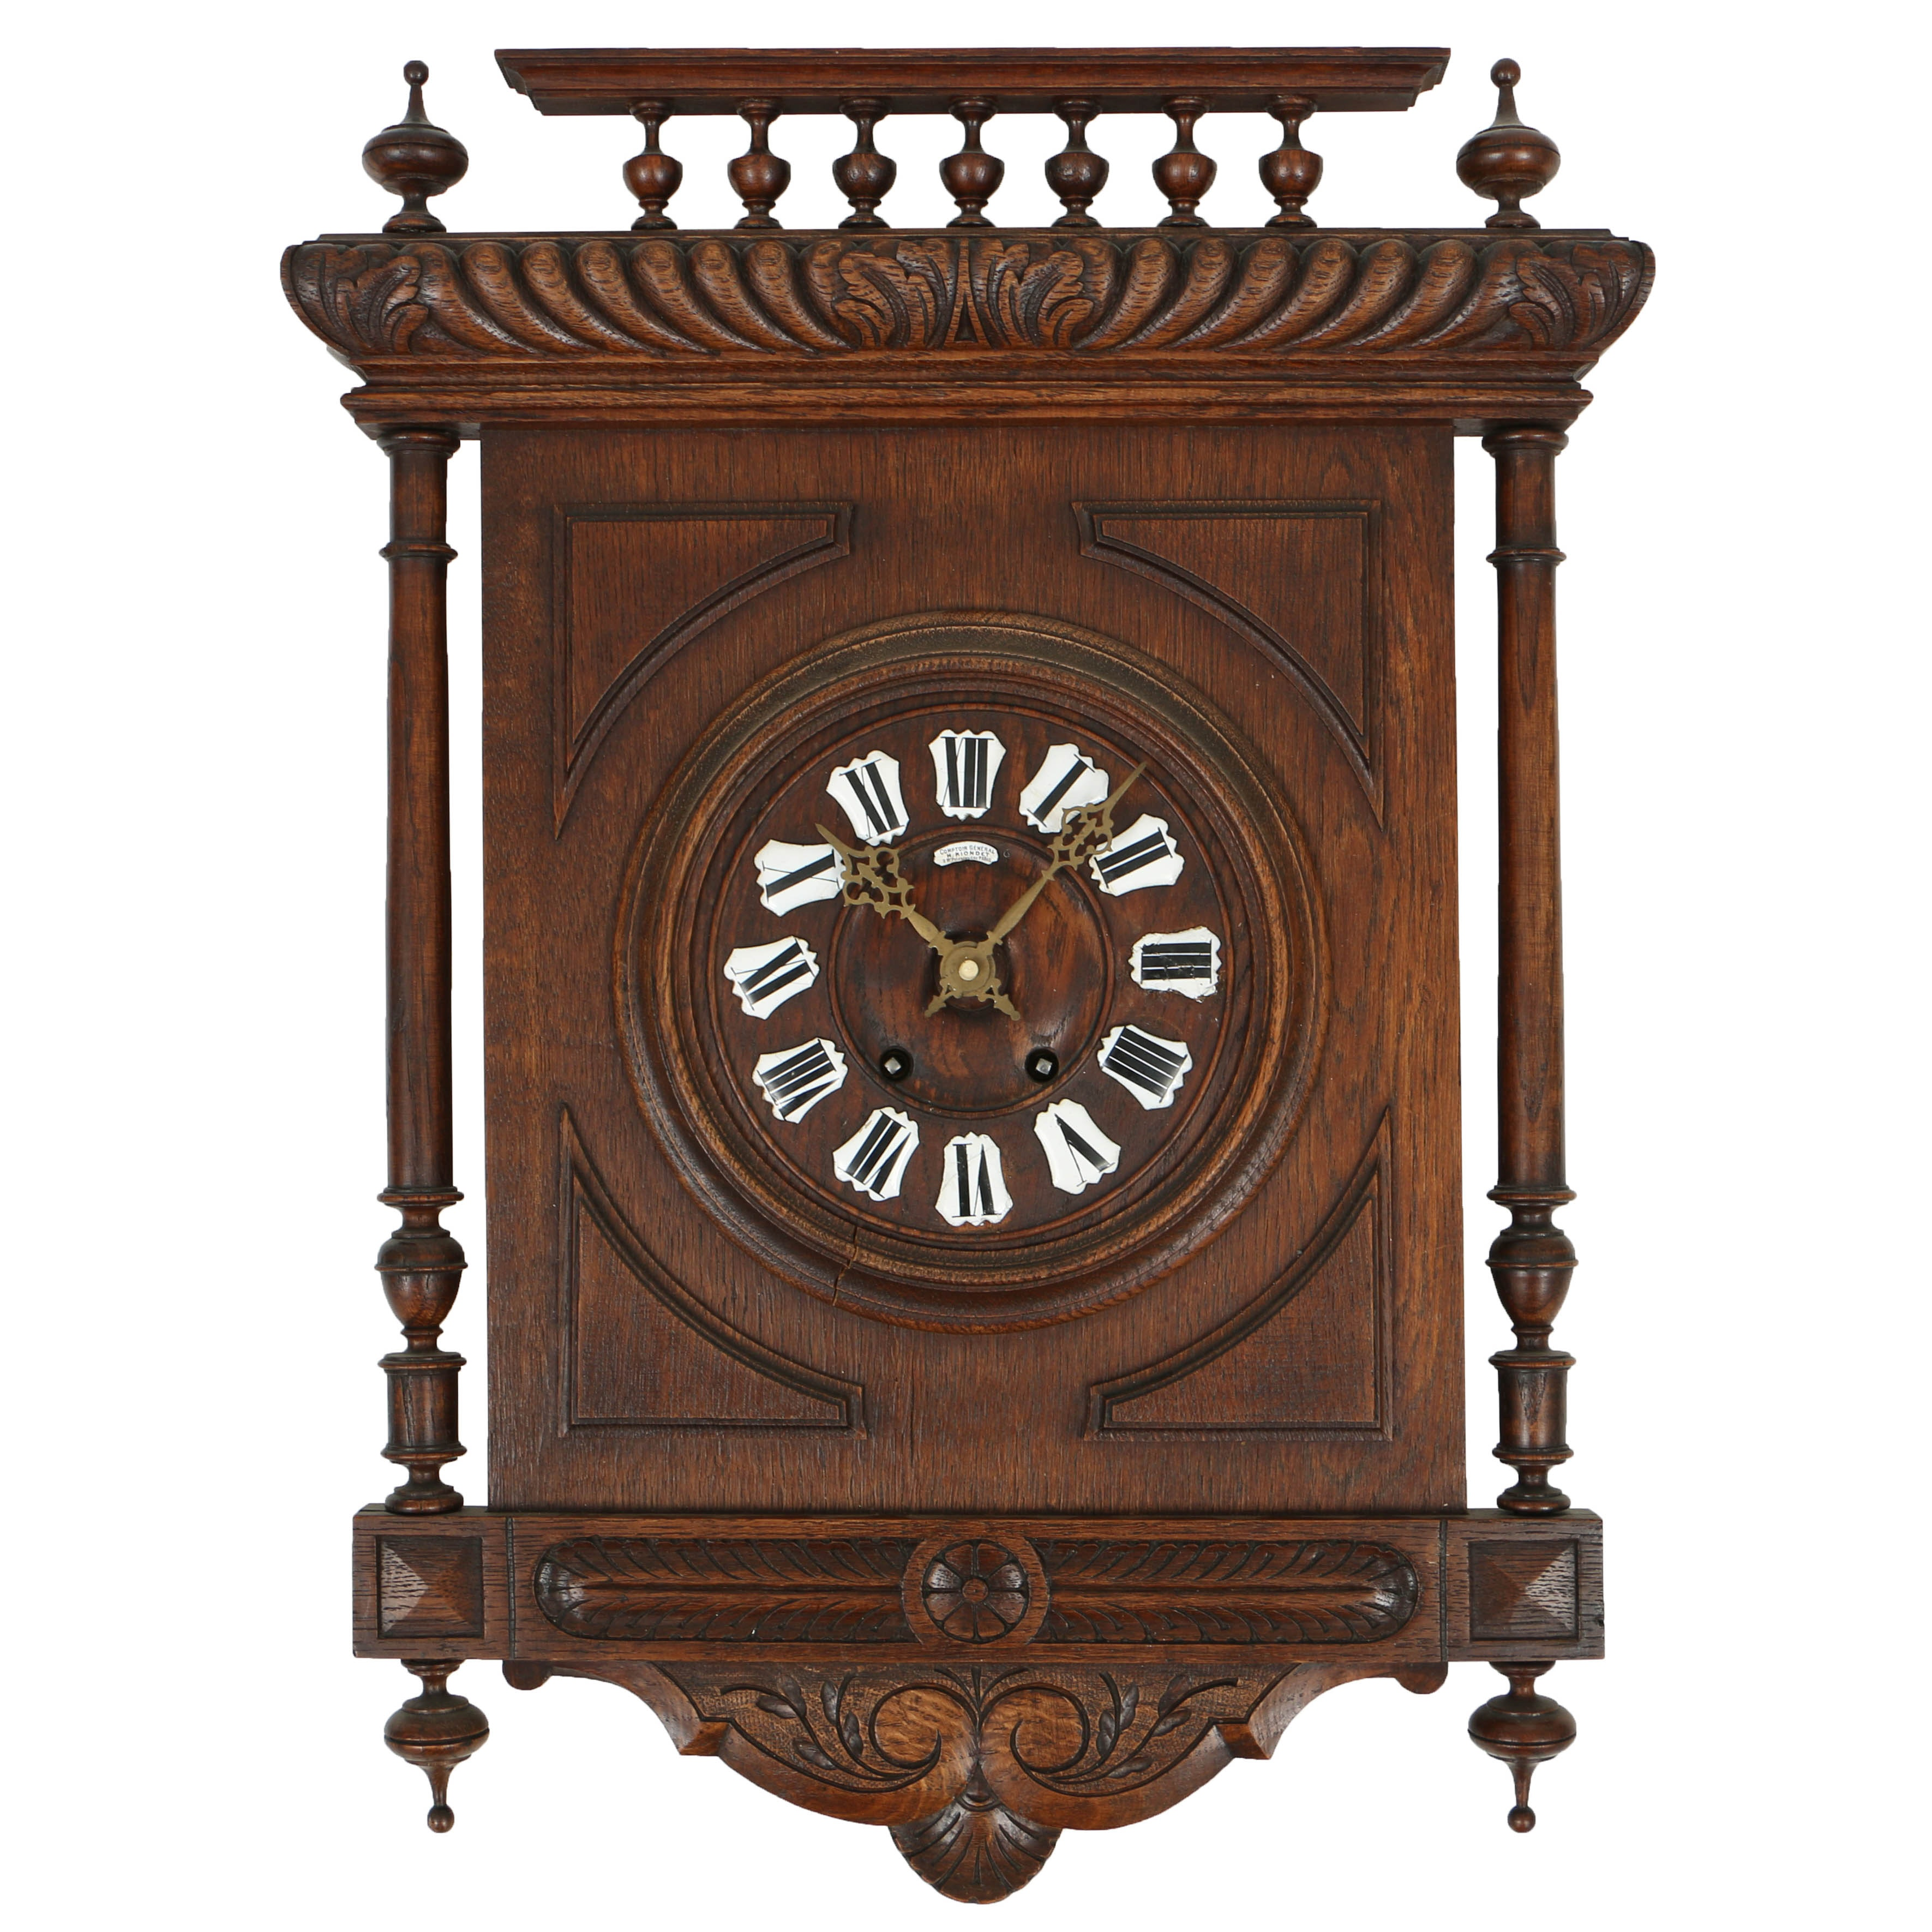 Antique French Oak Wall Clock by H. Riondet, Late 19th Century